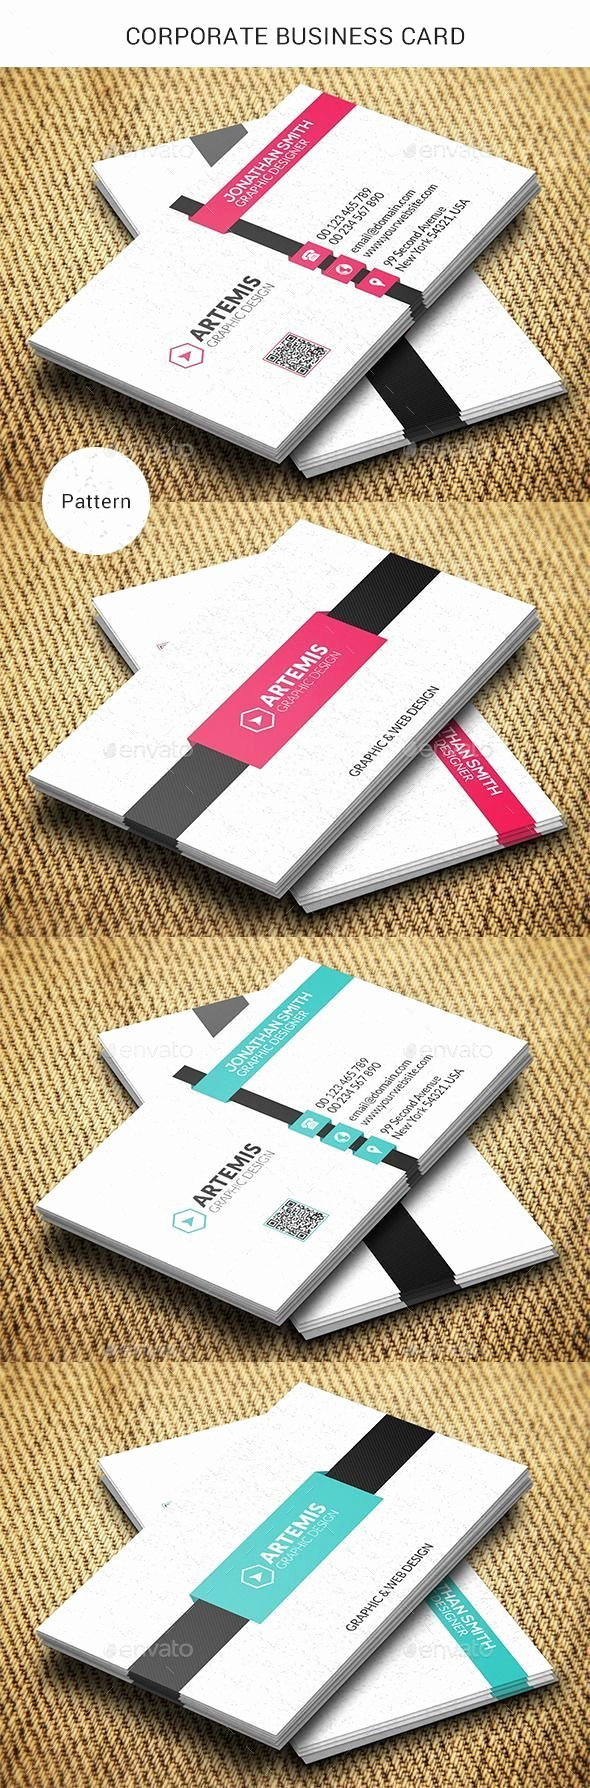 Employee Recognition Cards Template Lovely 30 Employee Recognition Cards Template